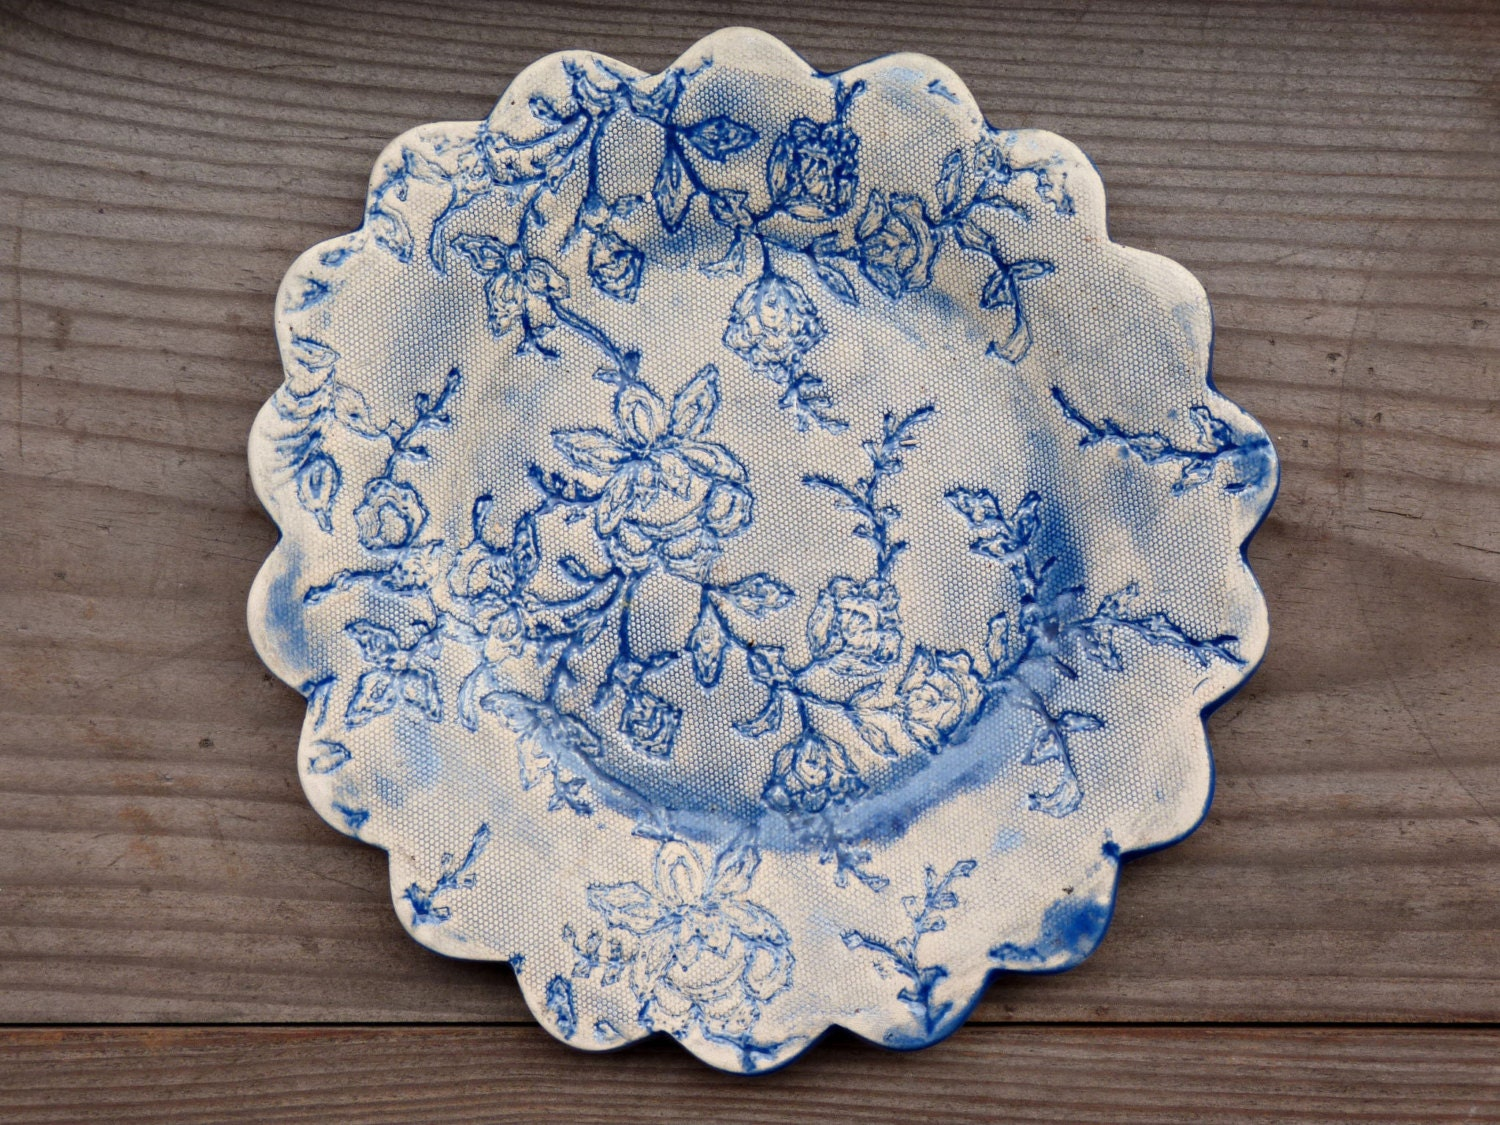 Decorative Plate Blue Ceramic Plate Lace Plate By Foxrosalita. Decorated Christmas Wreaths. Garden Decorative Fence. Safe Room Door. Decorative Packing Tape. Fleur De Lis Yard Decor. 12000 Btu Air Conditioner Room Size. Utility Room Storage. Bricks For Wall Decor